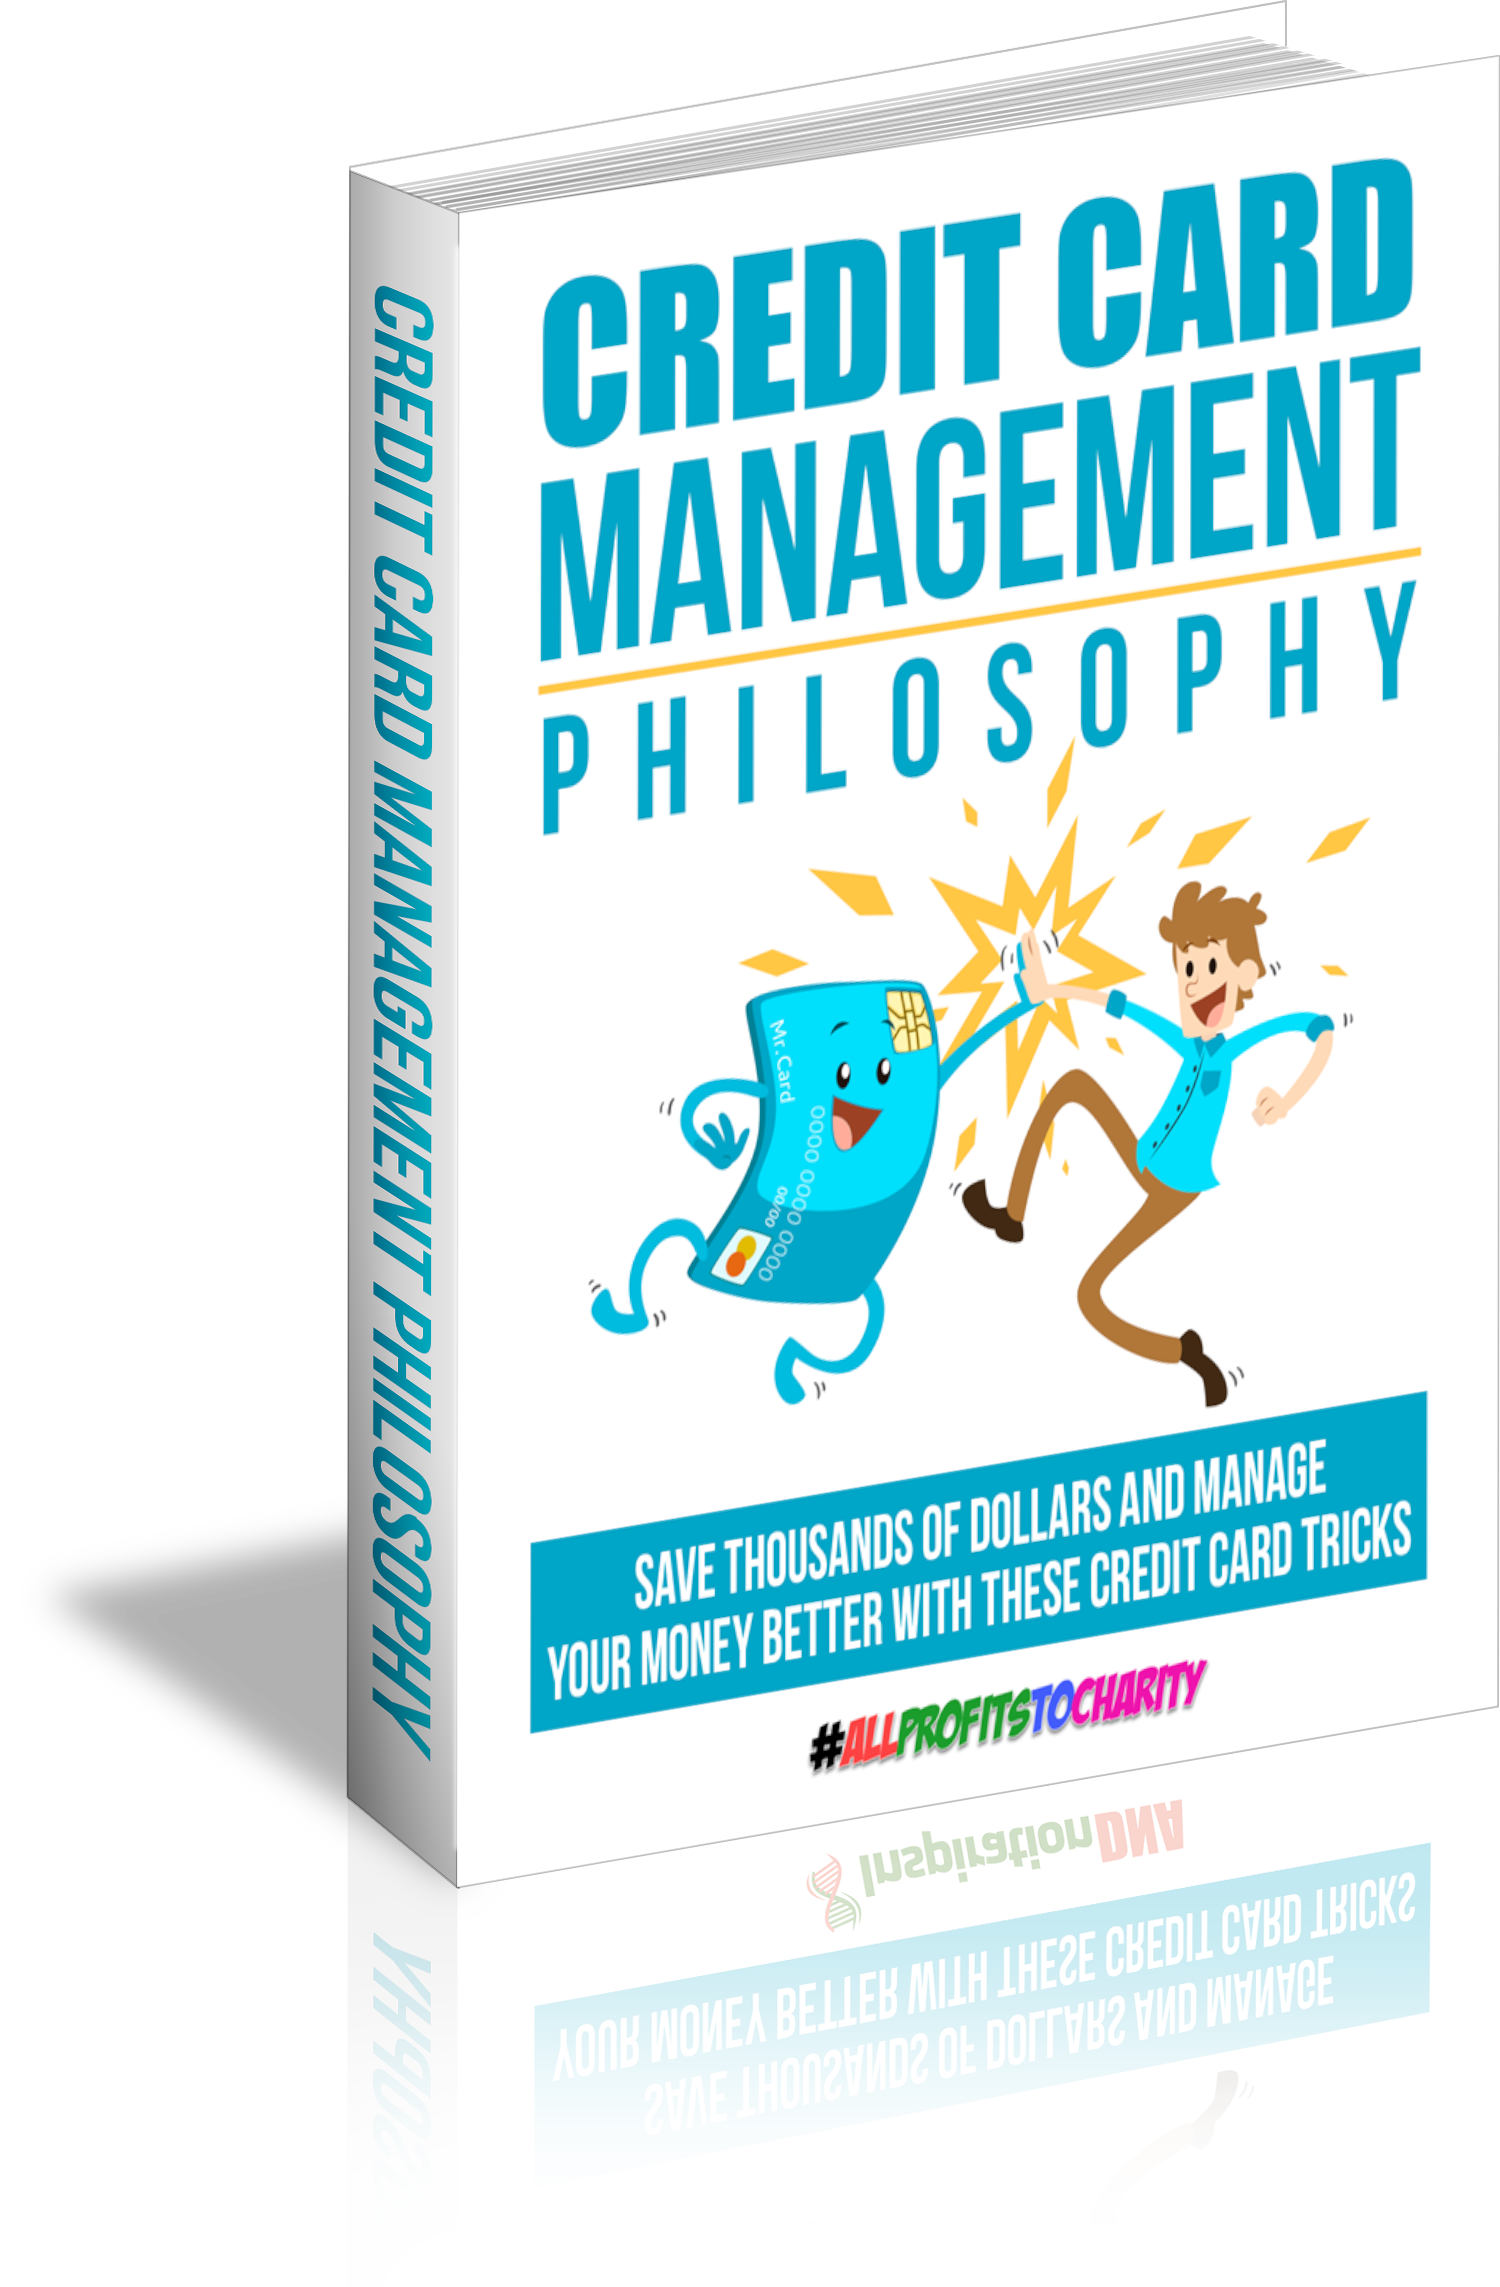 Credit Card Management Philosophy cover